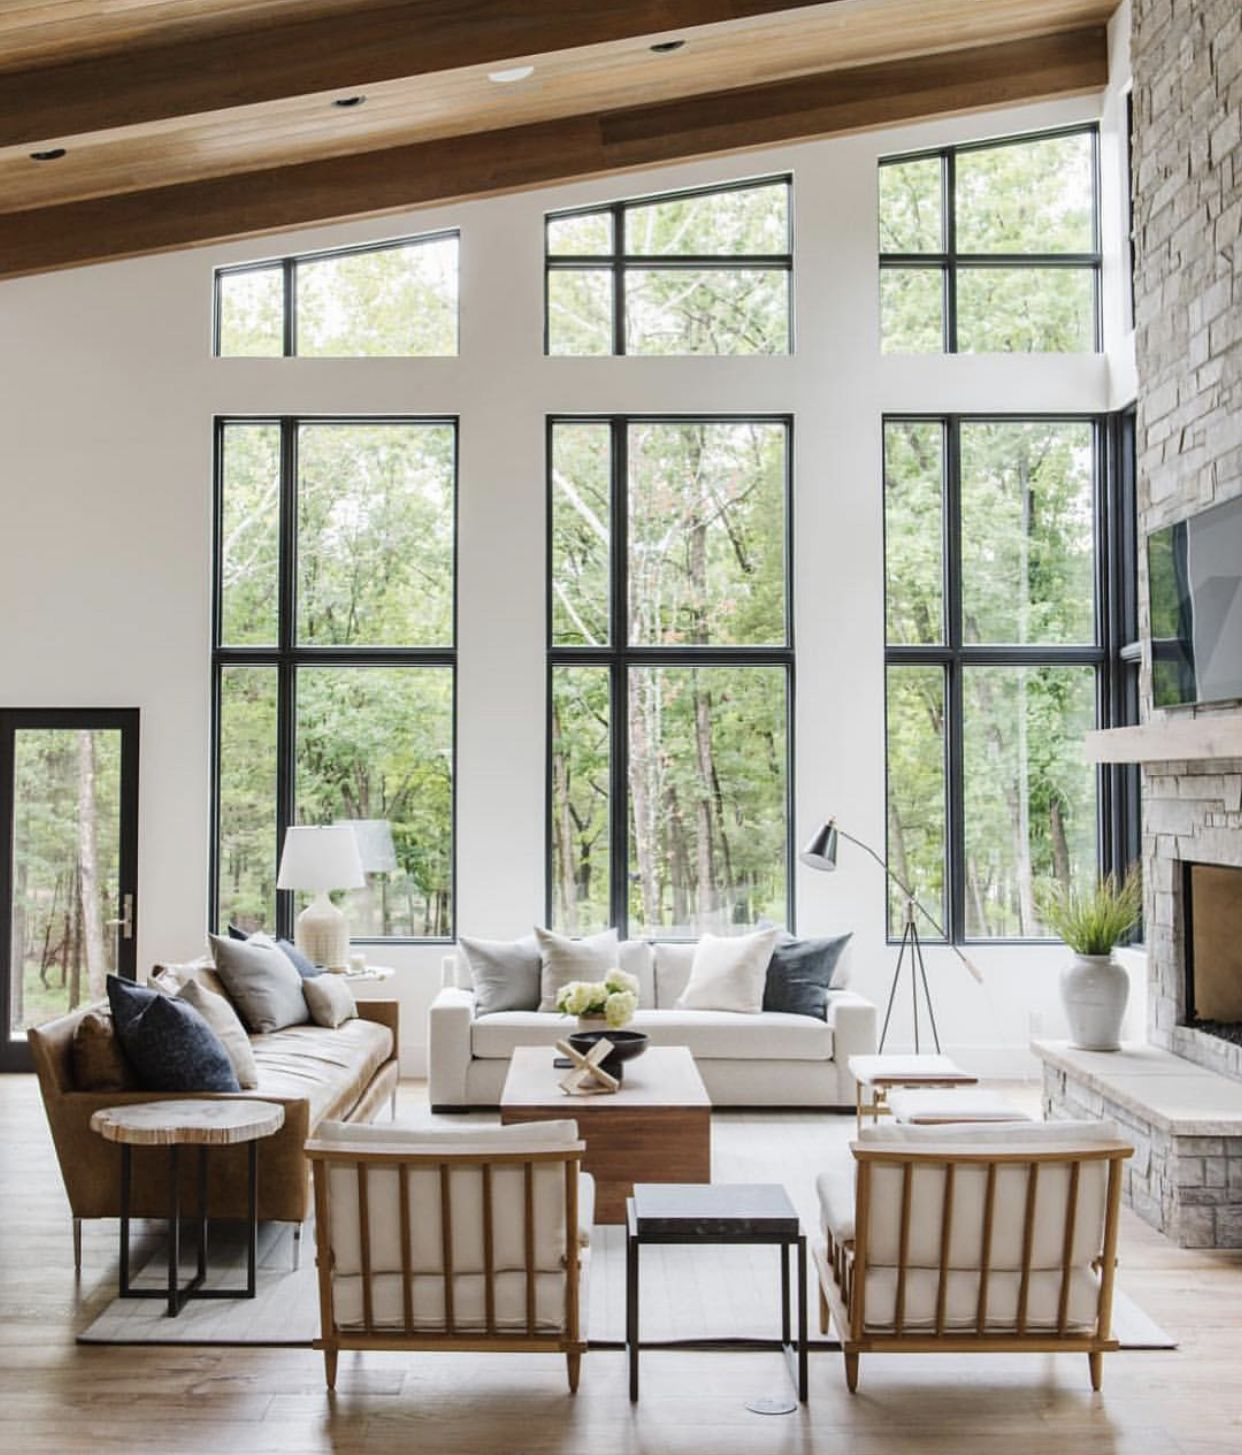 This Room Has A Lot Of Natural Light Coming In Through The Windows